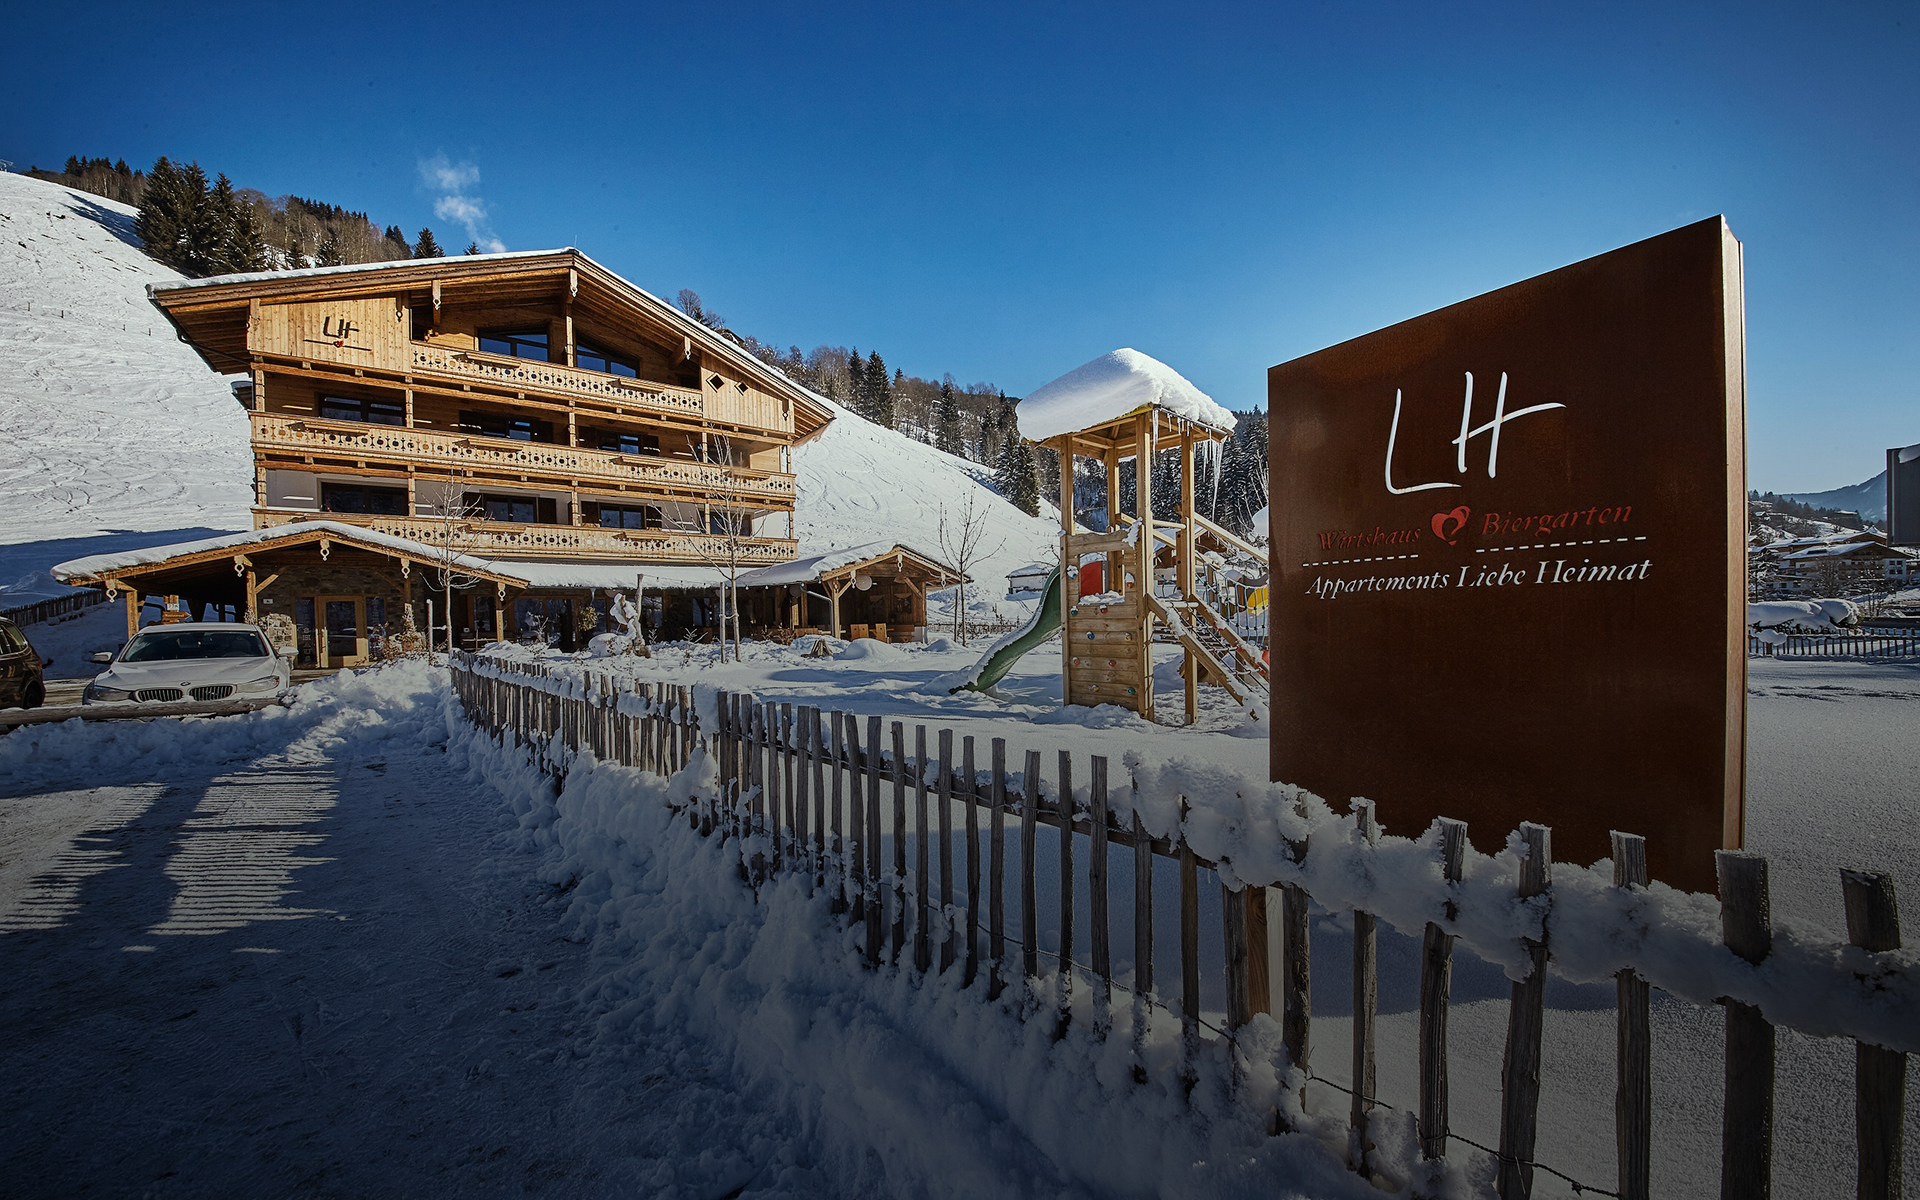 Win a wellness holiday in Saalbach Hinterglemm!